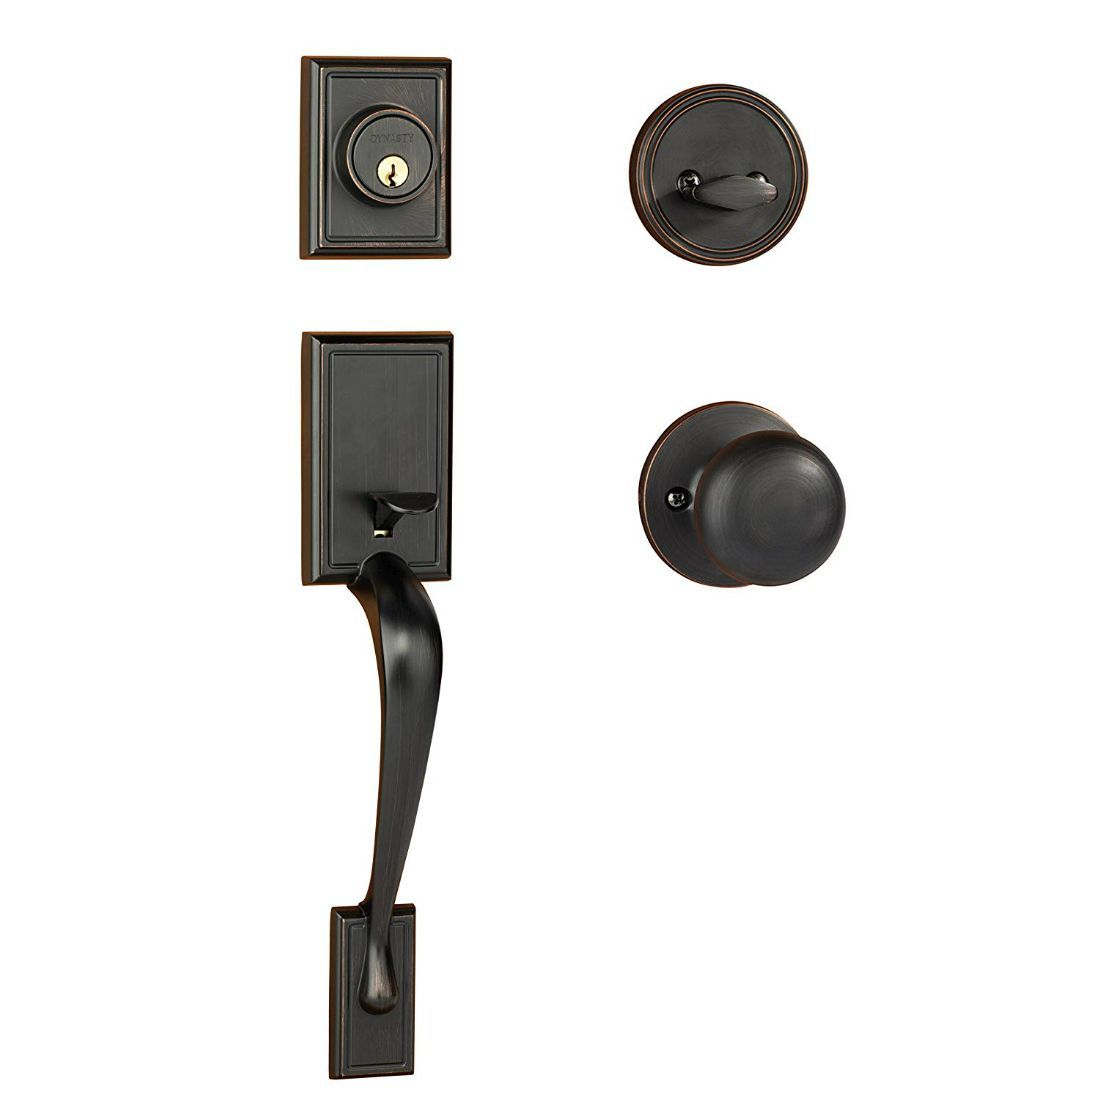 Dynasty Hardware Ridgecrest RID-TAH-100-12P Front Door Handleset with Tahoe Knob, Aged Oil Rubbed Bronze